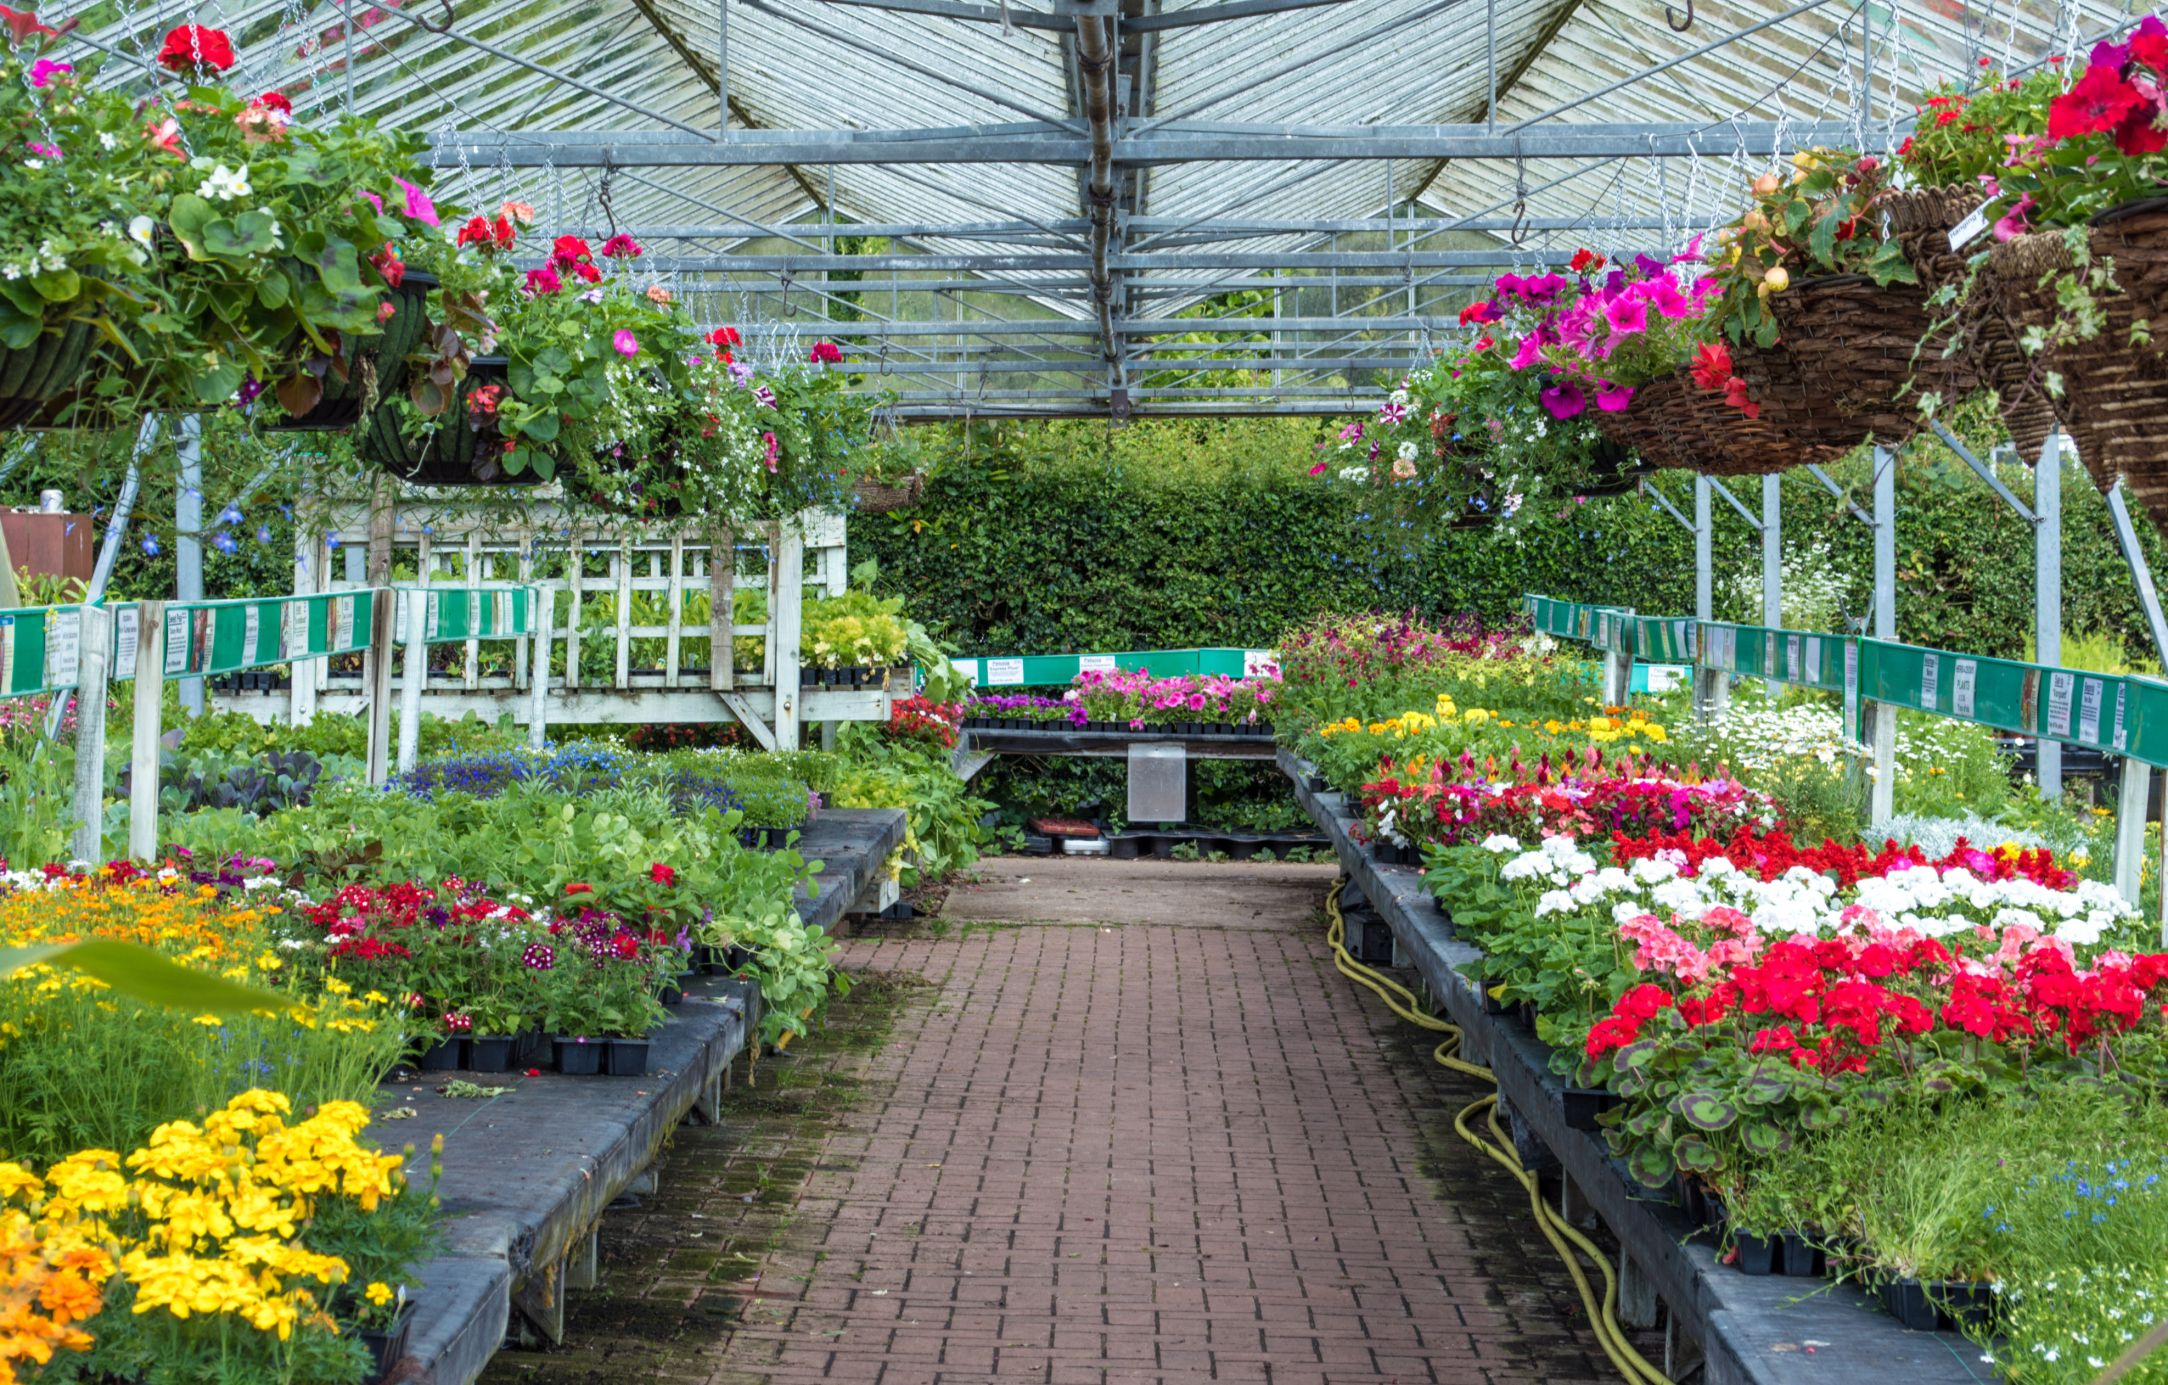 The 10 Most Toxic Items at the Garden Center